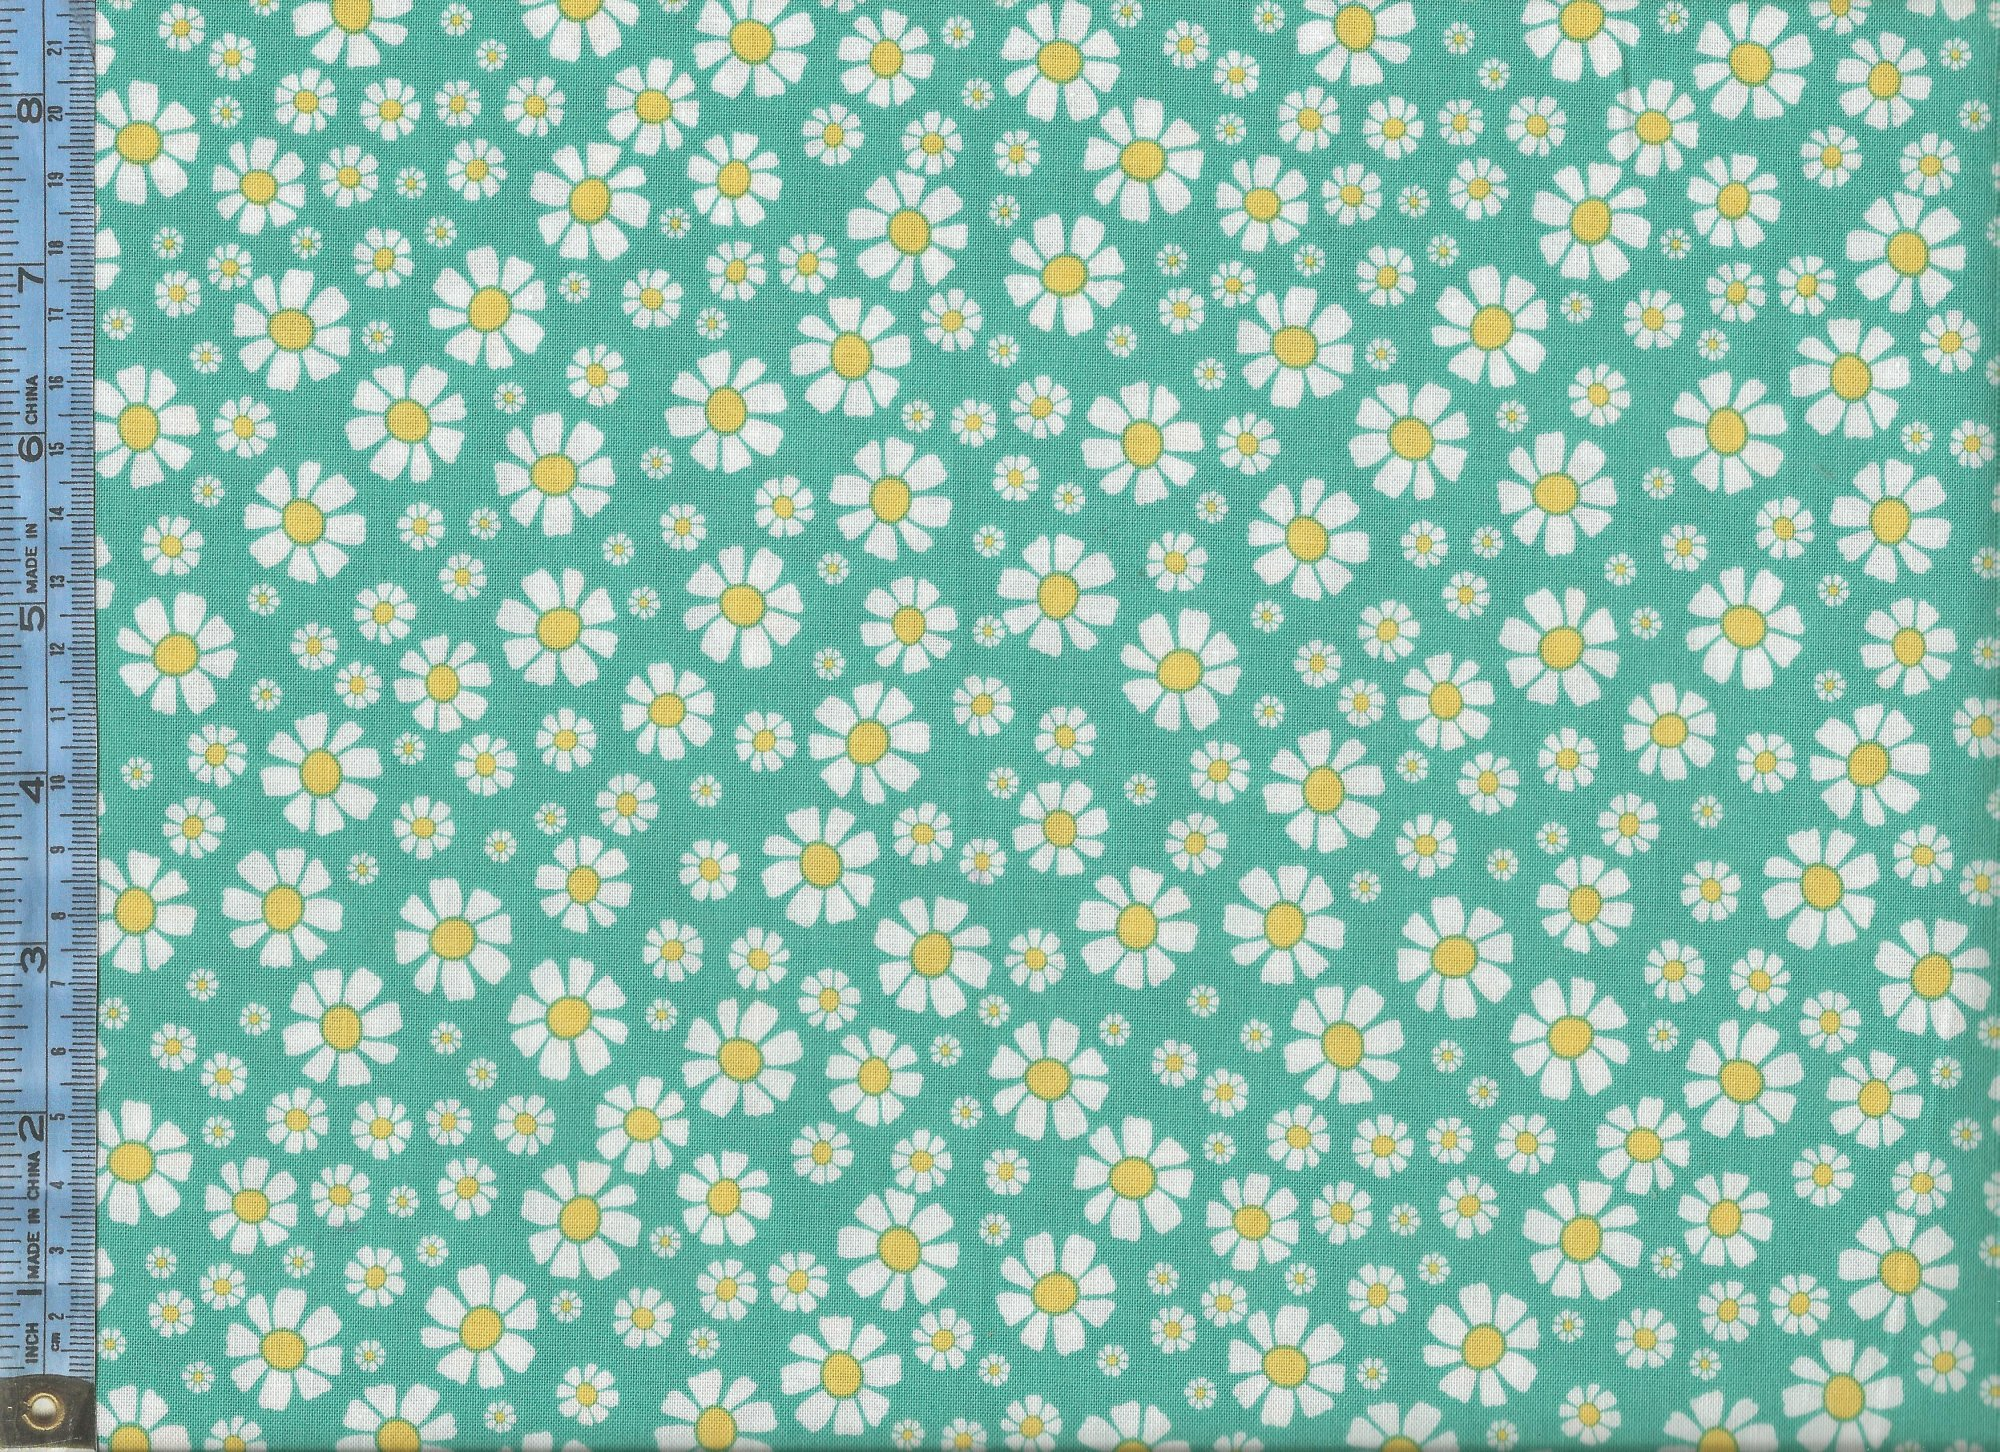 Shabby Strawberry - (C6043-teal) white and yellow daisies on teal background